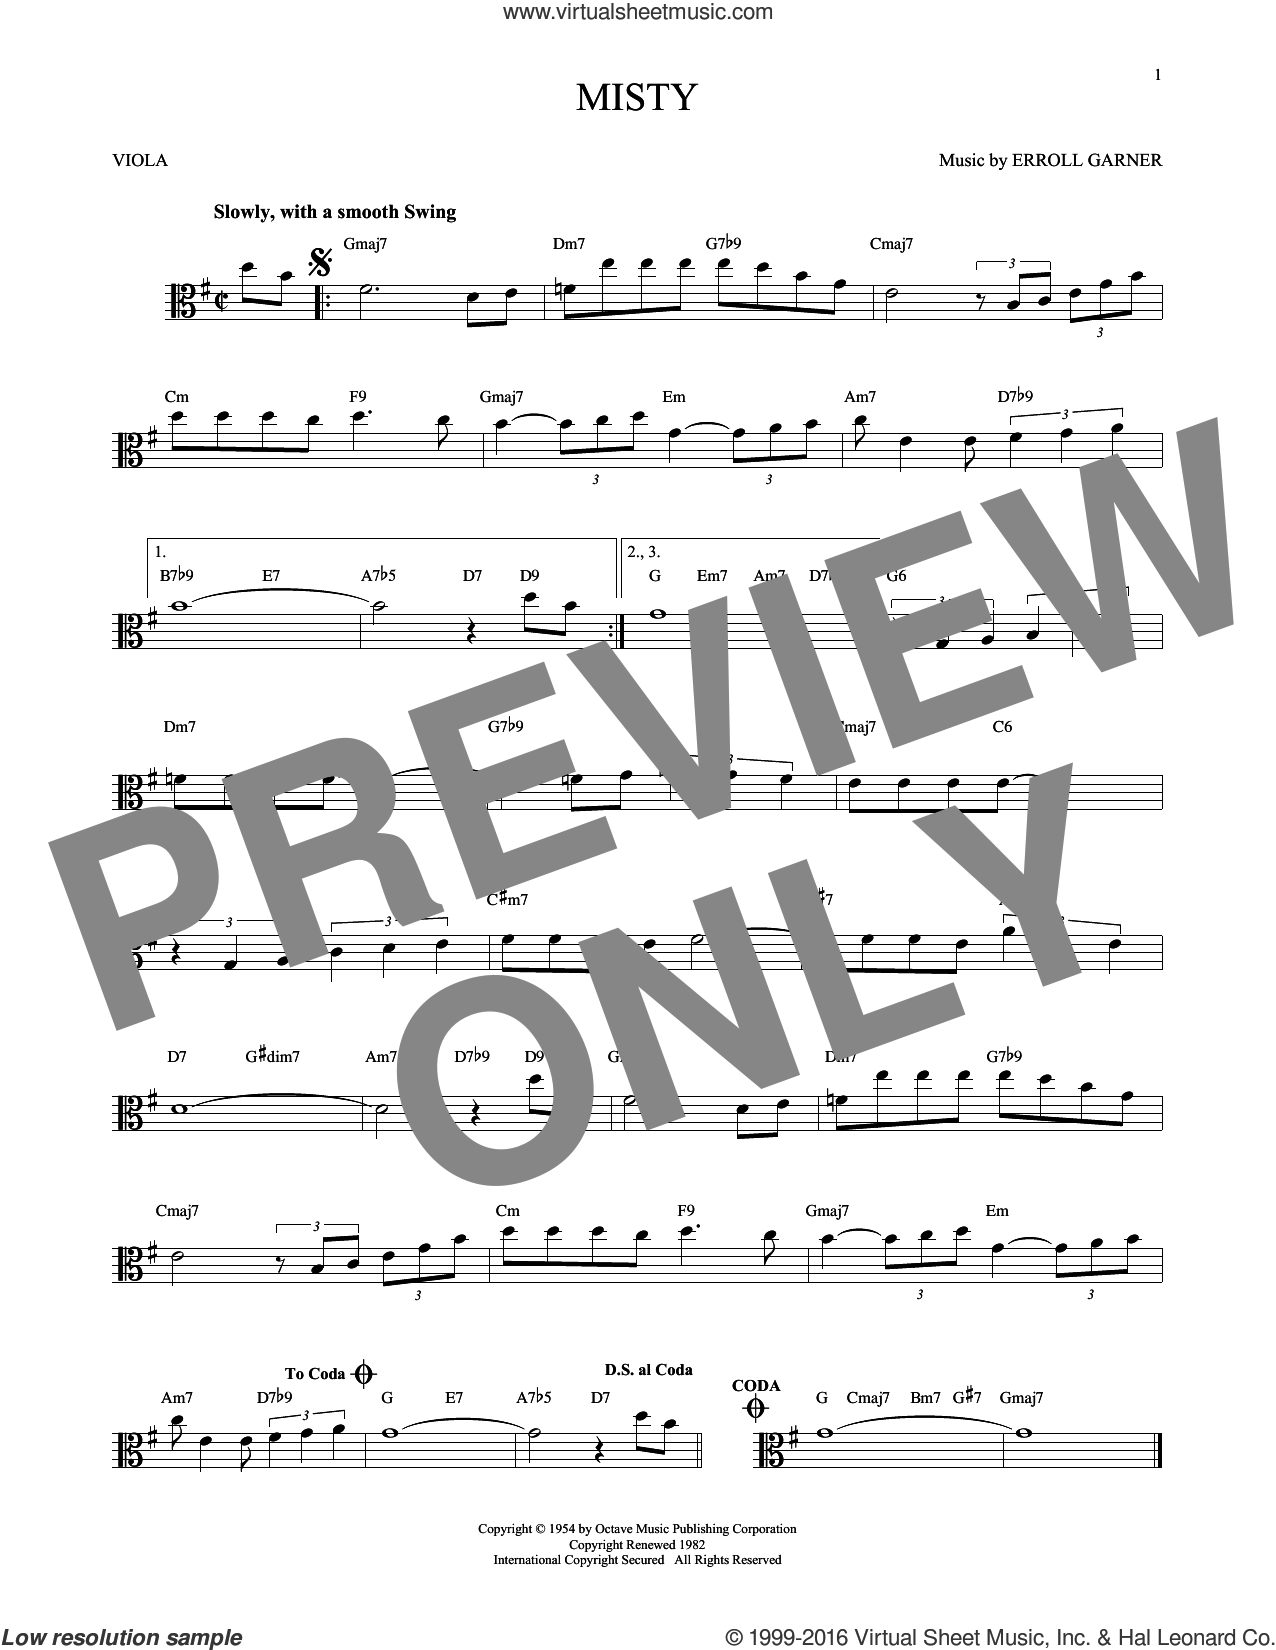 Misty sheet music for viola solo by John Burke, Johnny Mathis and Erroll Garner, intermediate skill level